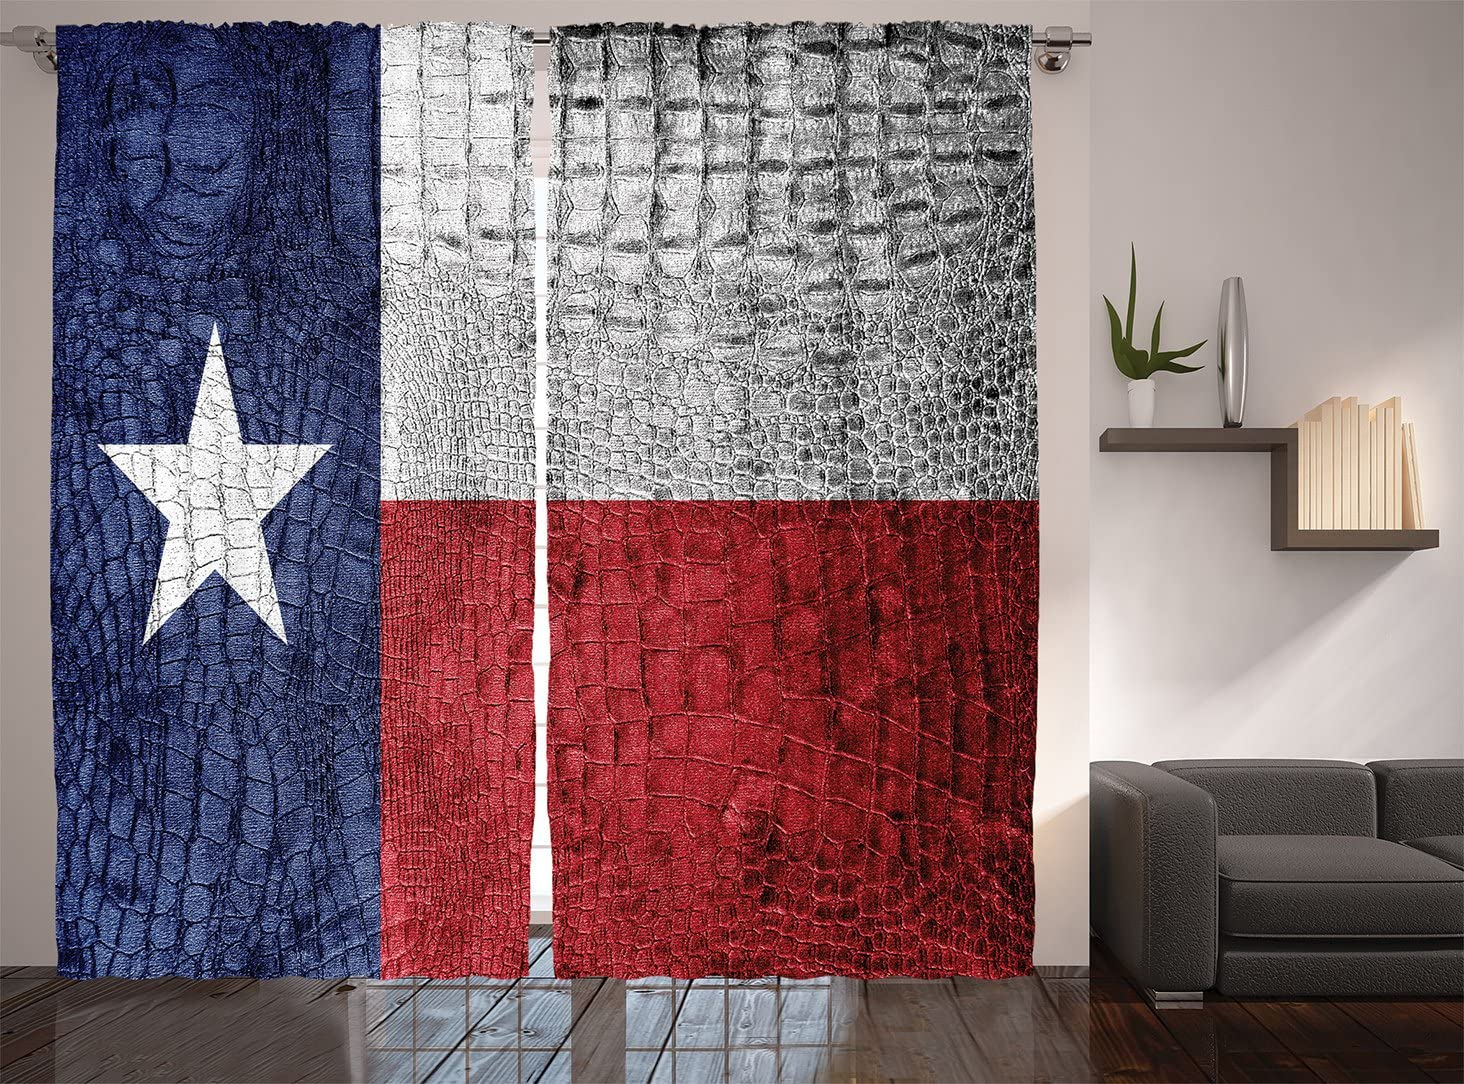 Ambesonne Western Decor Collection, Texas State Flag Painted on Luxury Crocodile Snake Skin Patriotic Emblem, Window Treatments, Living Room Bedroom Curtain Set, 108 X 84 Inches, Burgundy Navy White